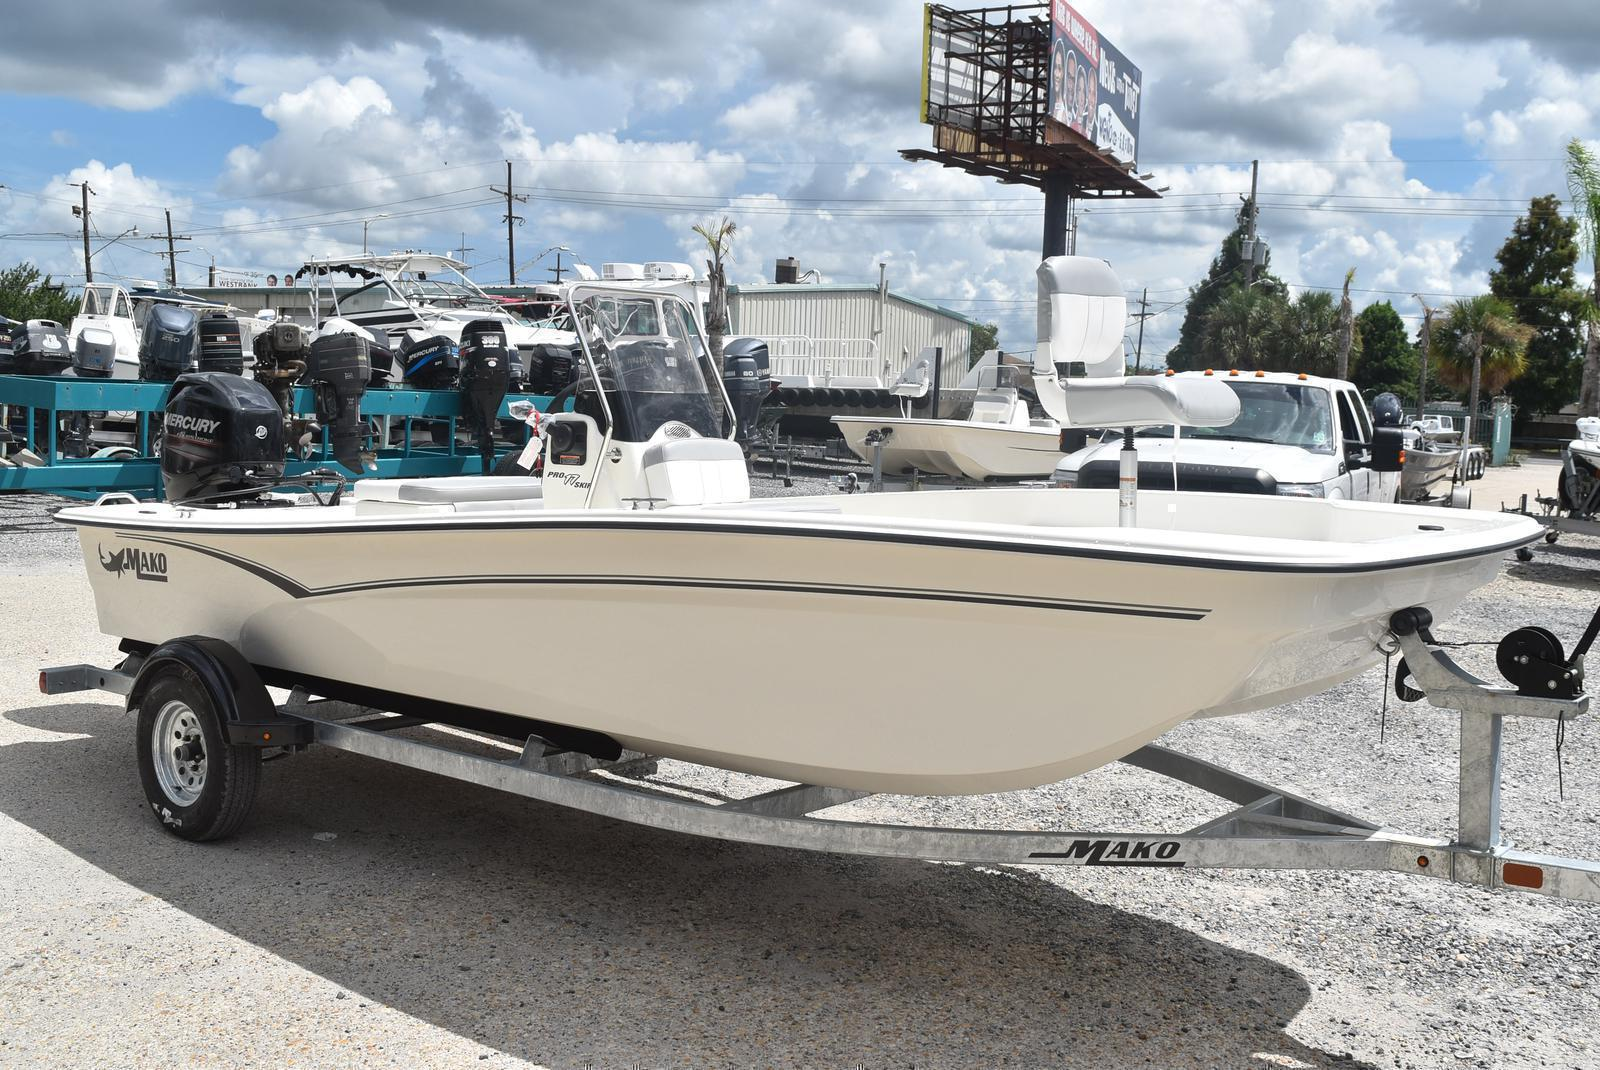 2020 Mako boat for sale, model of the boat is Pro Skiff 17, 75 ELPT & Image # 678 of 702